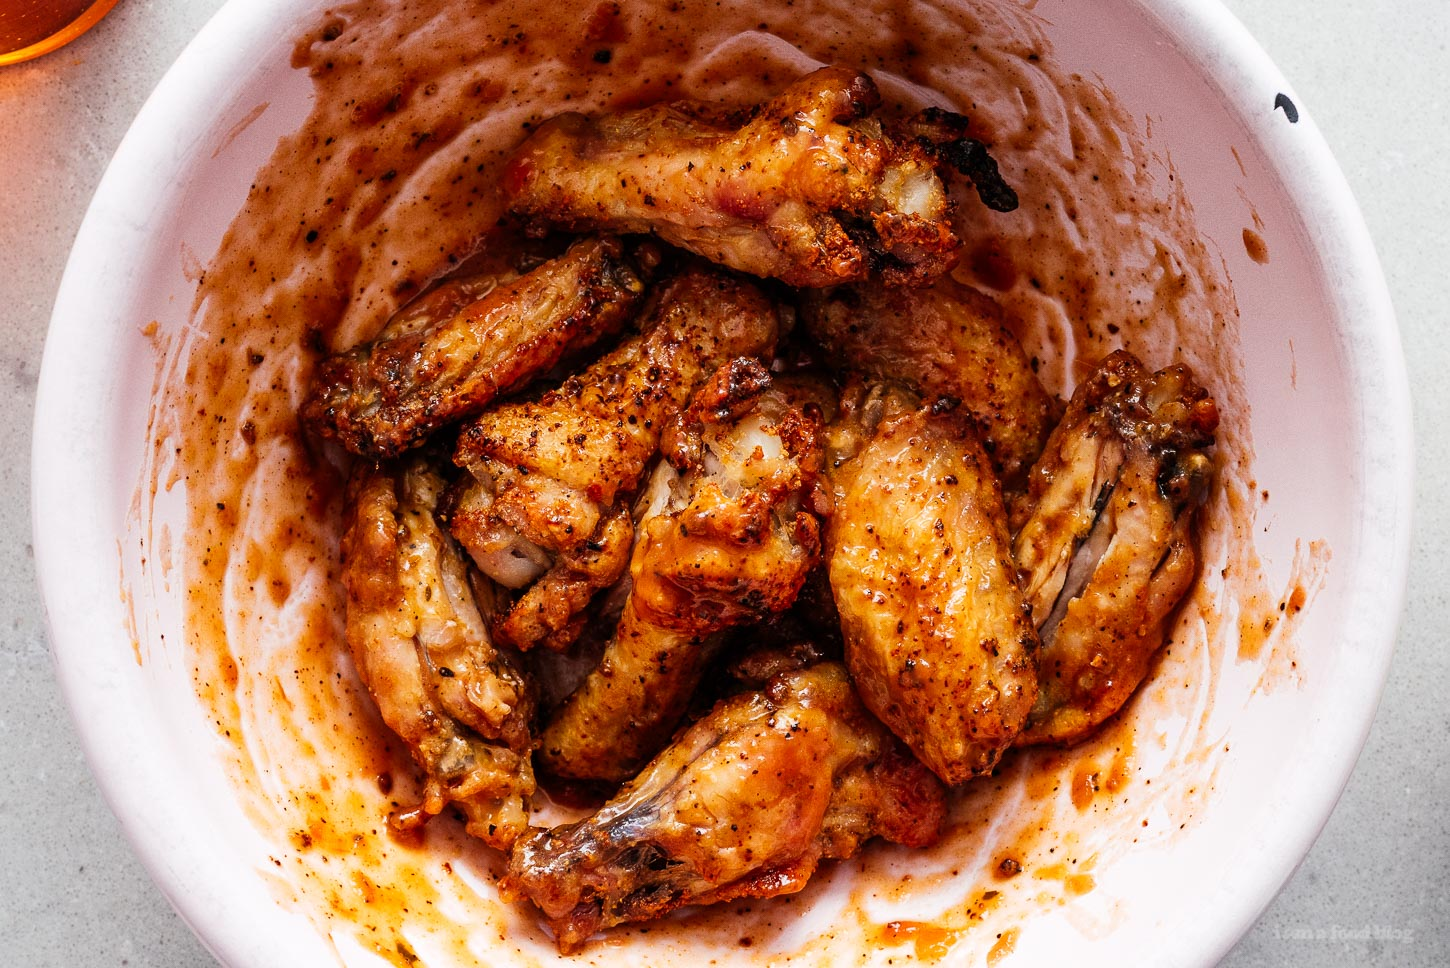 air fryer chicken wings tossed in hot sauce | www.iamafoodblog.com